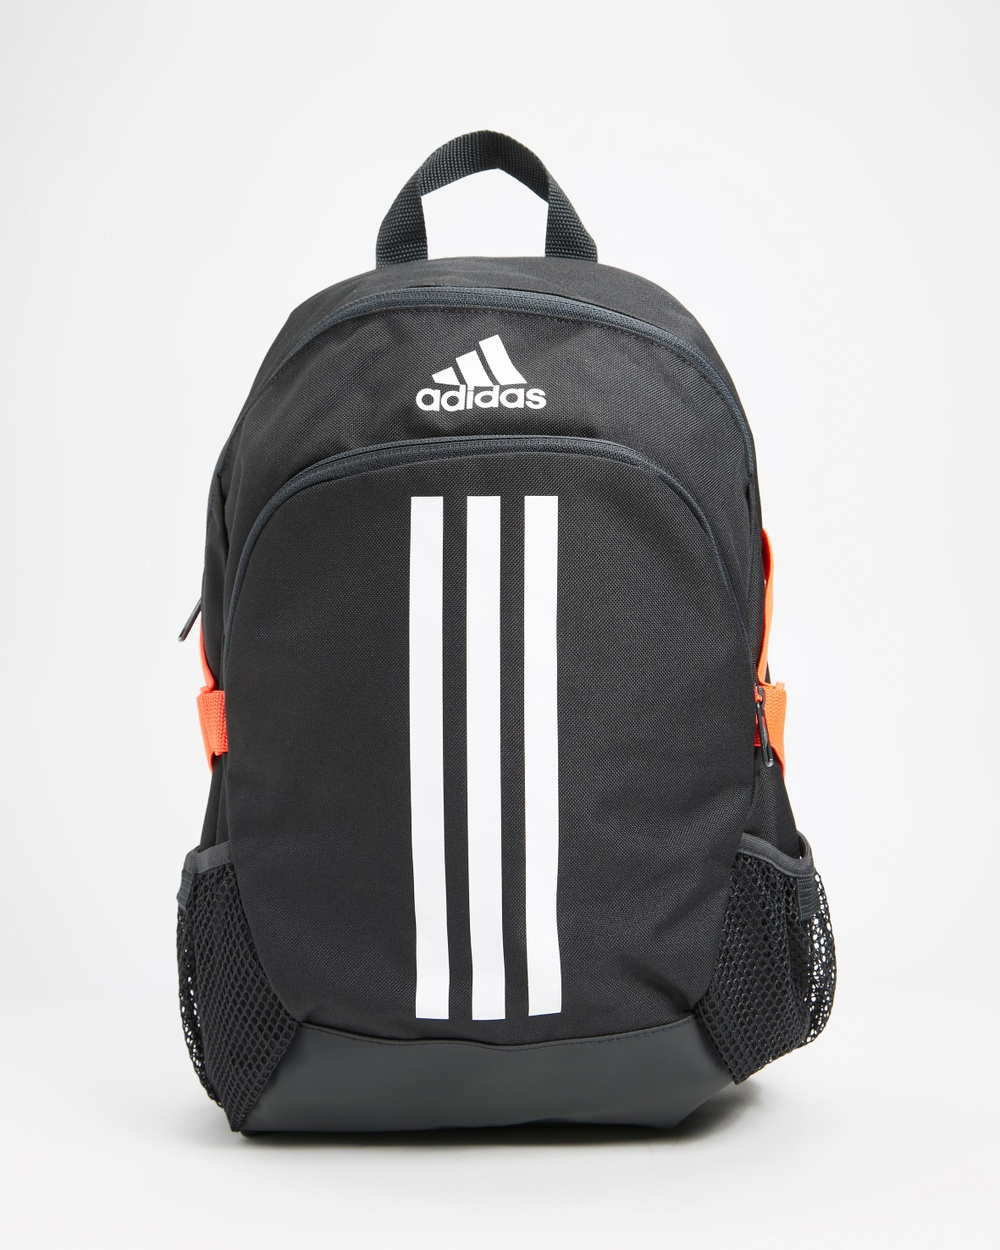 adidas Performance Power 5 Small Backpack Kids Backpacks Carbon, White, Vista Grey & App Solar Red